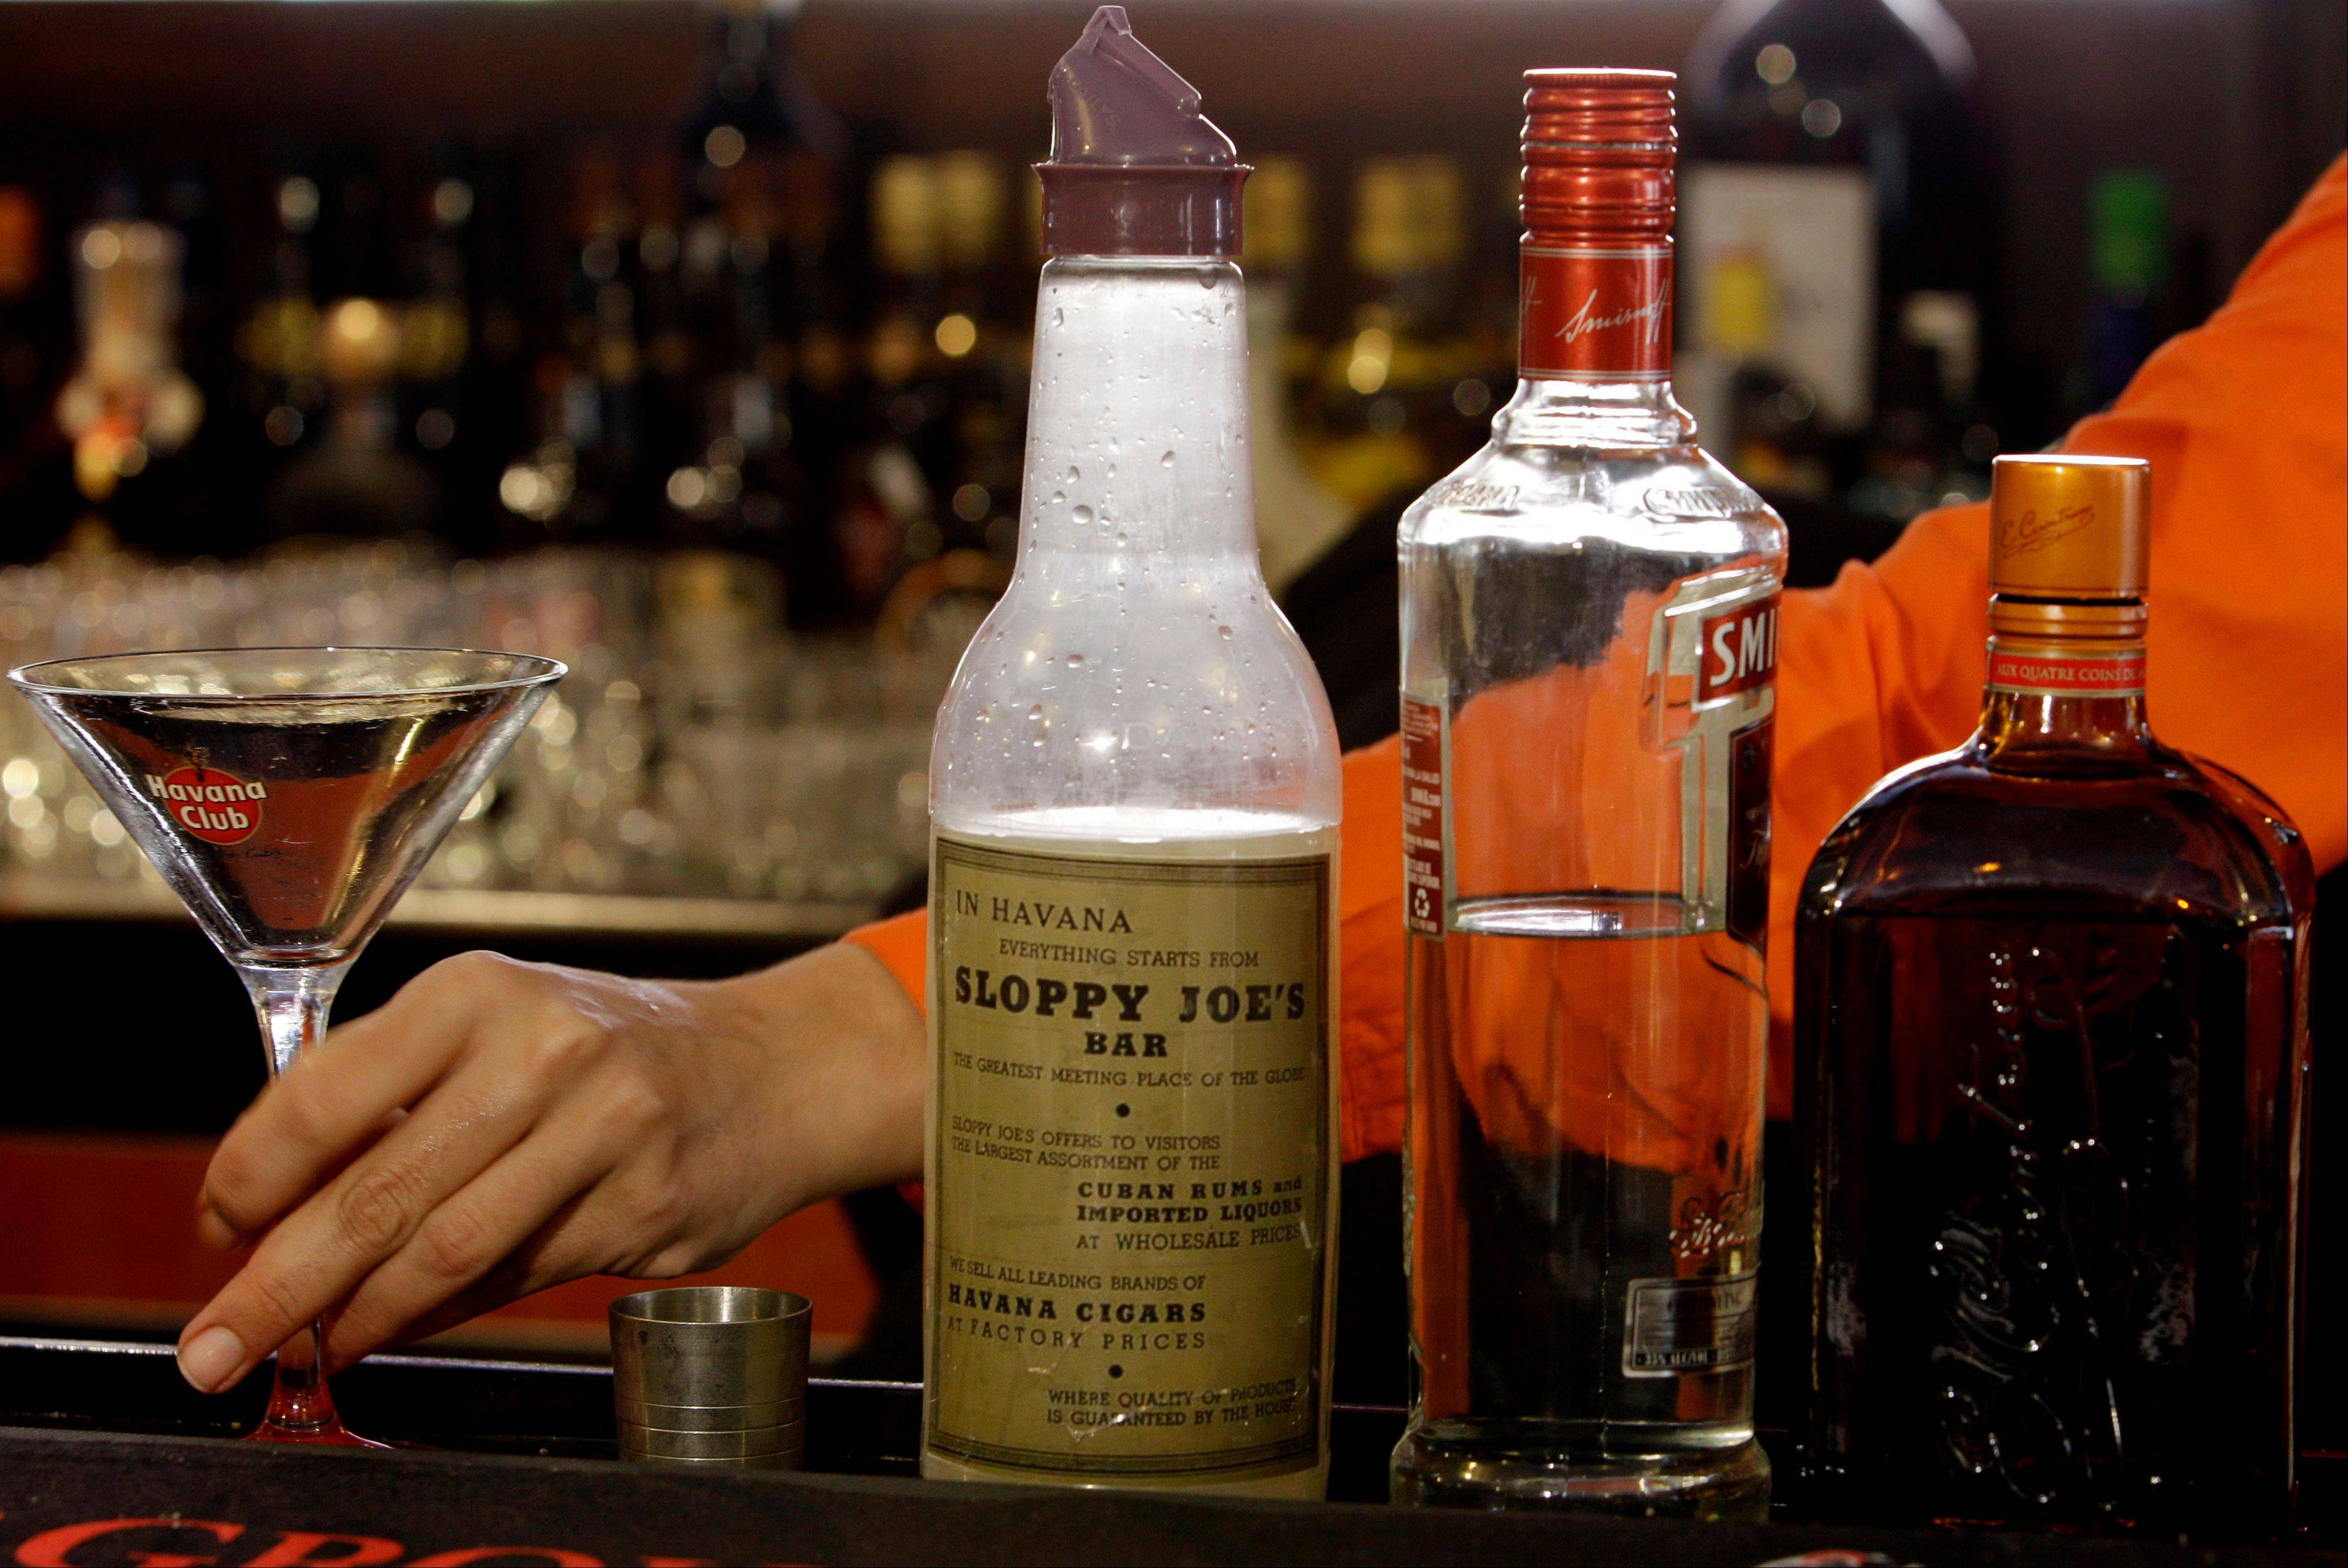 A bartender prepares a drink Friday at Sloppy Joe's Bar before its reopening in Havana, Cuba.